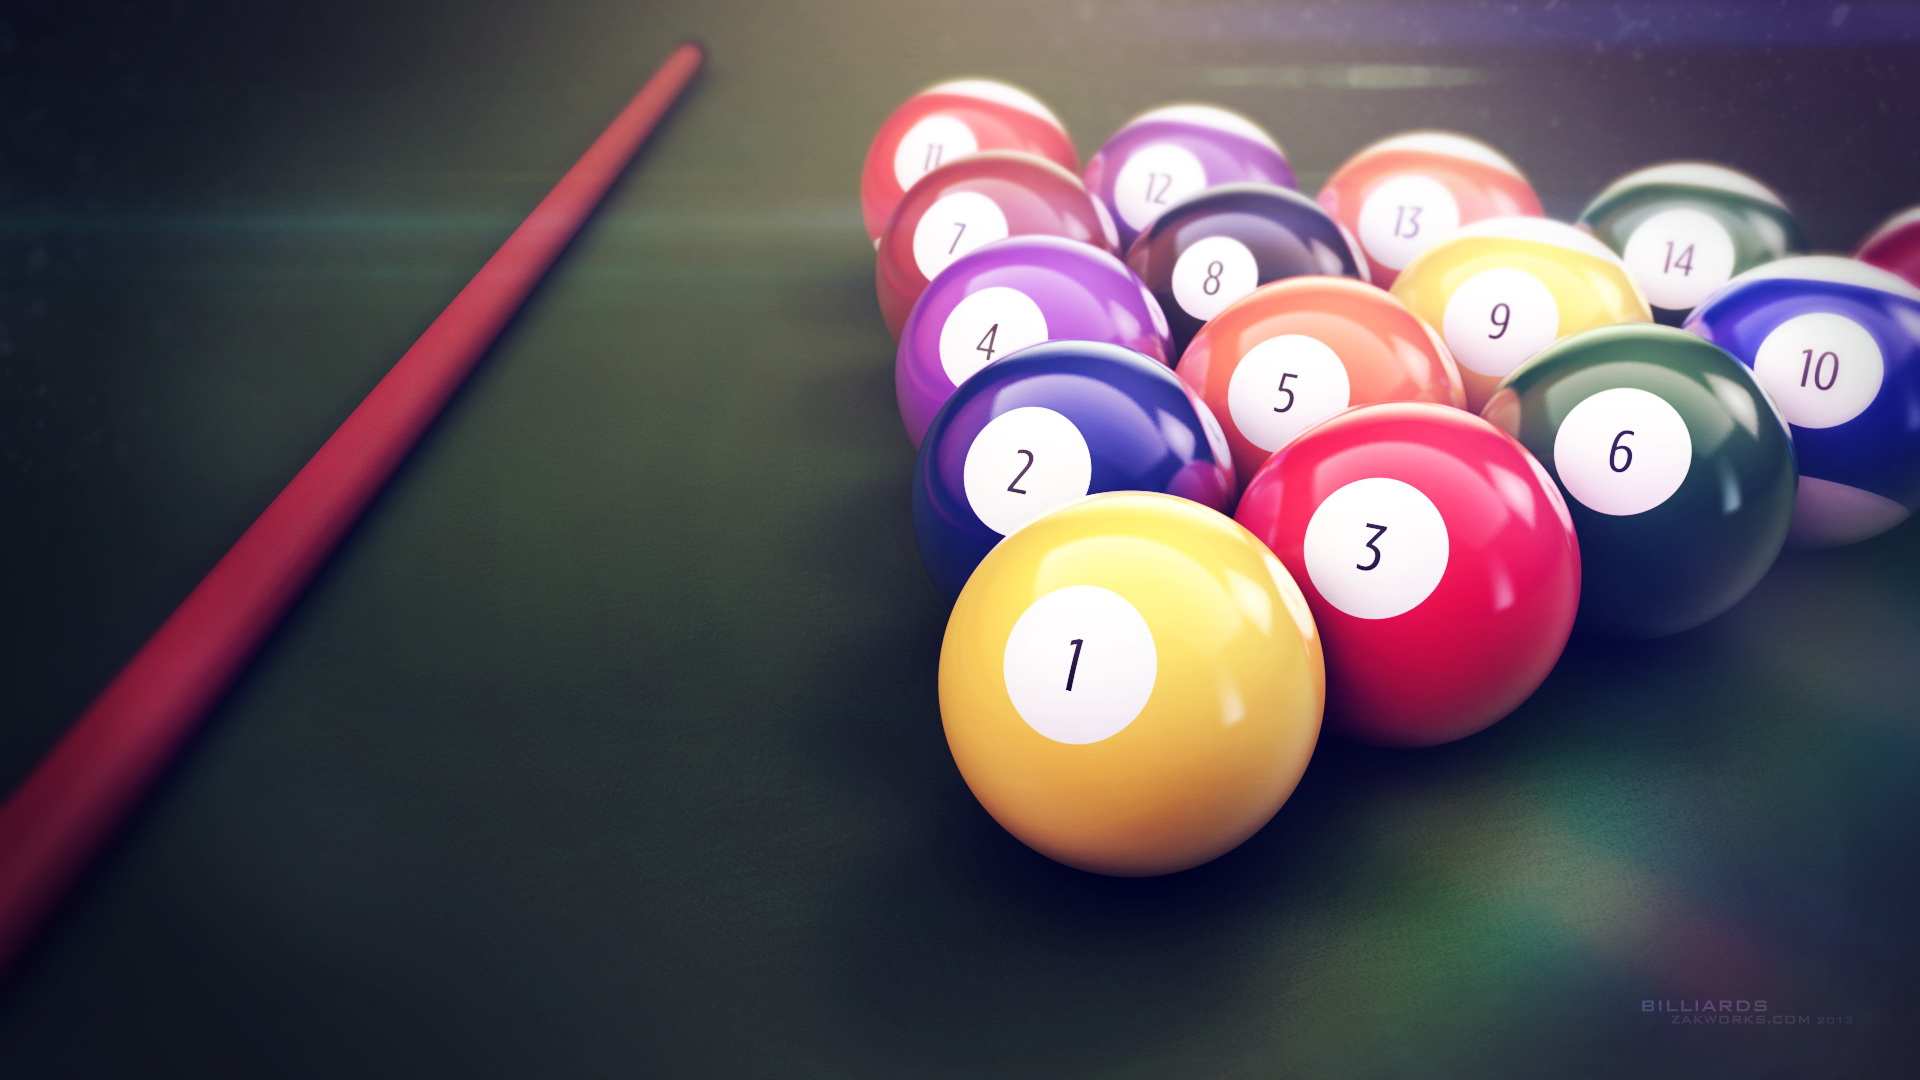 Billiards 96.41 Kb